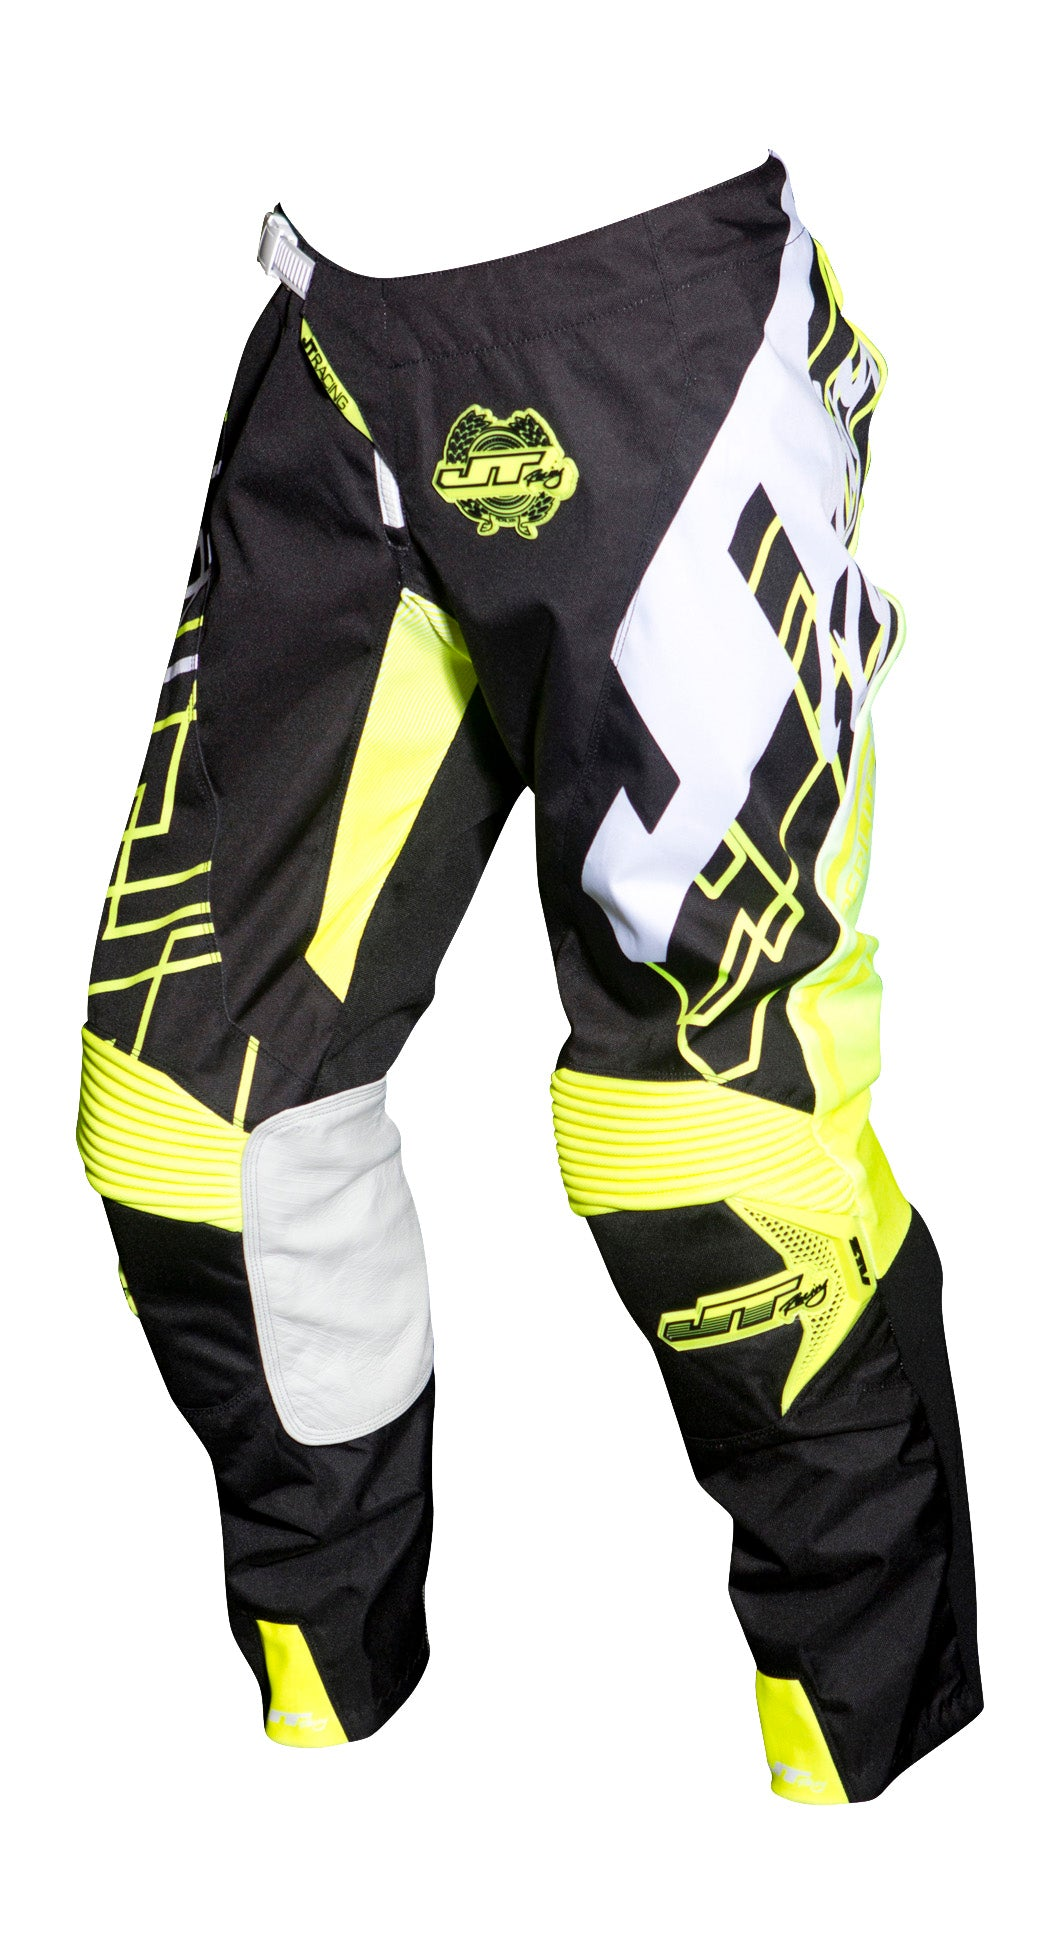 JT RACING USA-2018 Hyperlite Shuffle Pants, Black/Neon Yellow/White